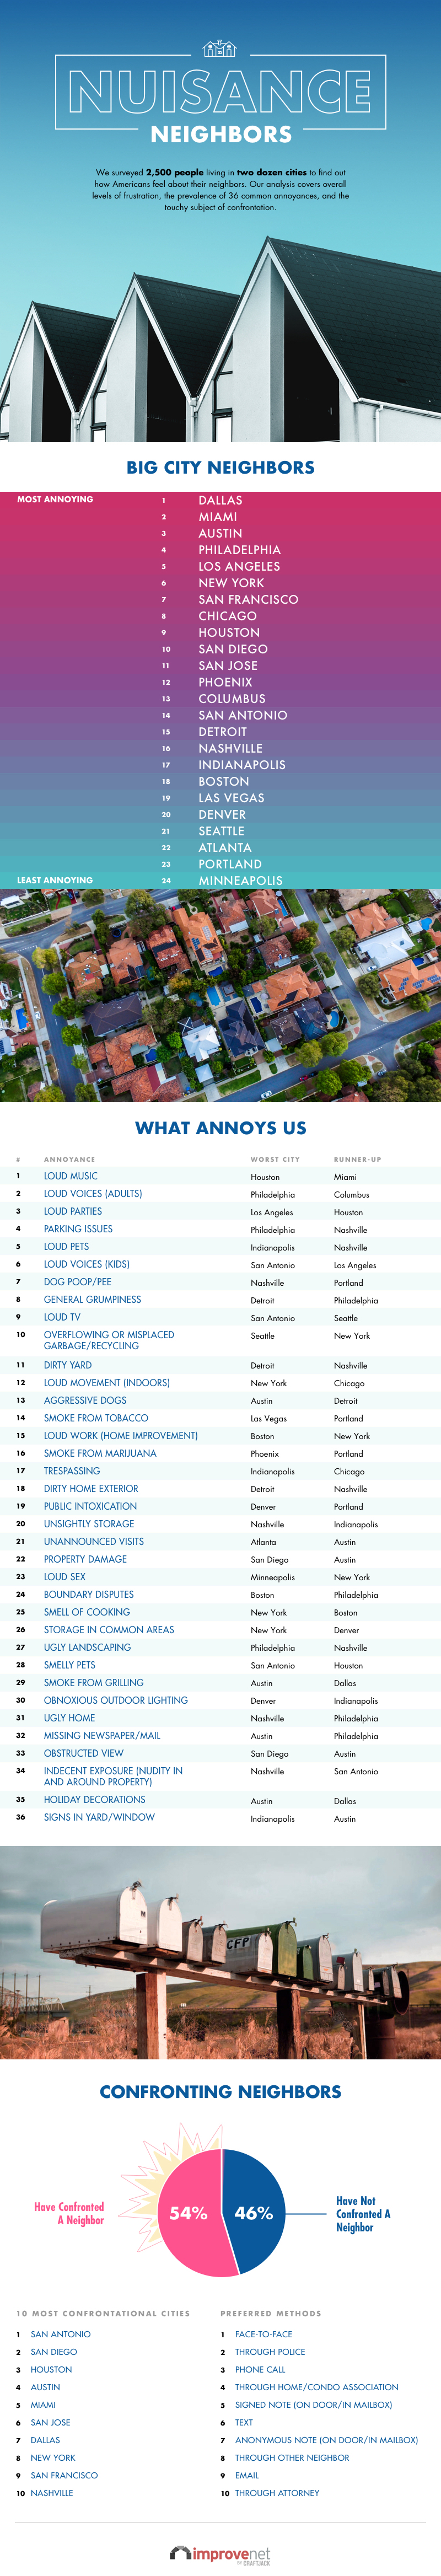 Survey Reveals Most Annoying Neighbors In America [Infographic]